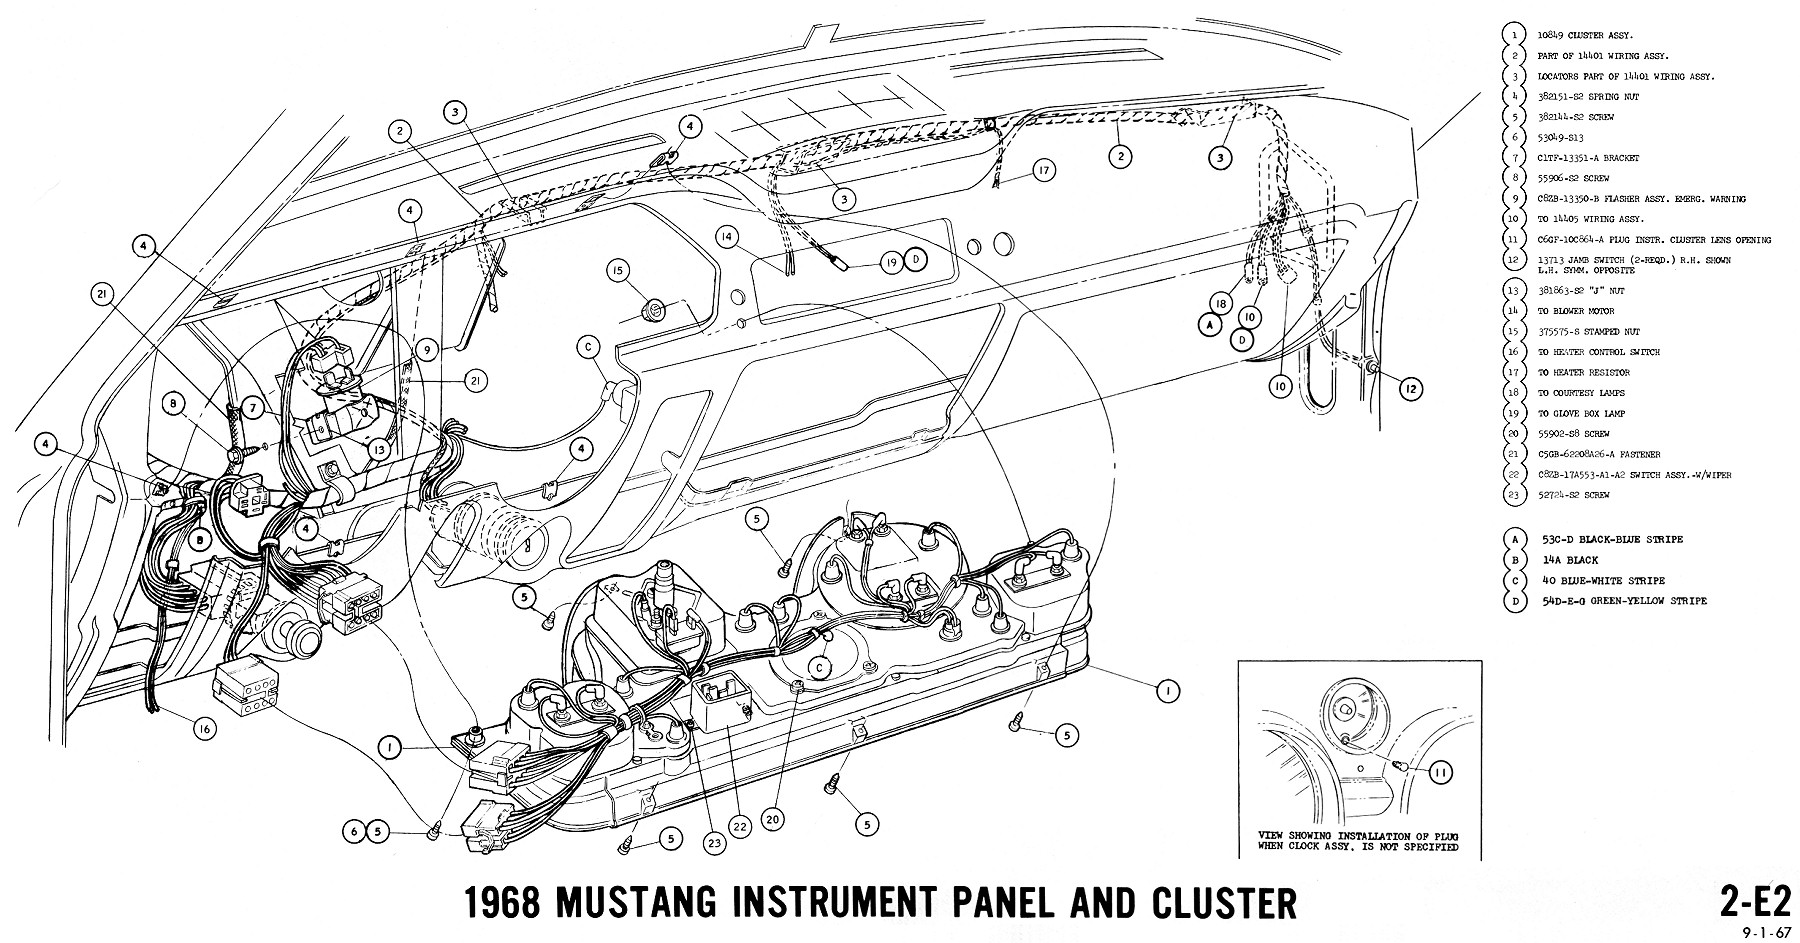 1968 mustang wiring diagram instruments 2 1968 mustang wiring diagrams and vacuum schematics average joe 1965 mustang wiring diagram pdf at couponss.co